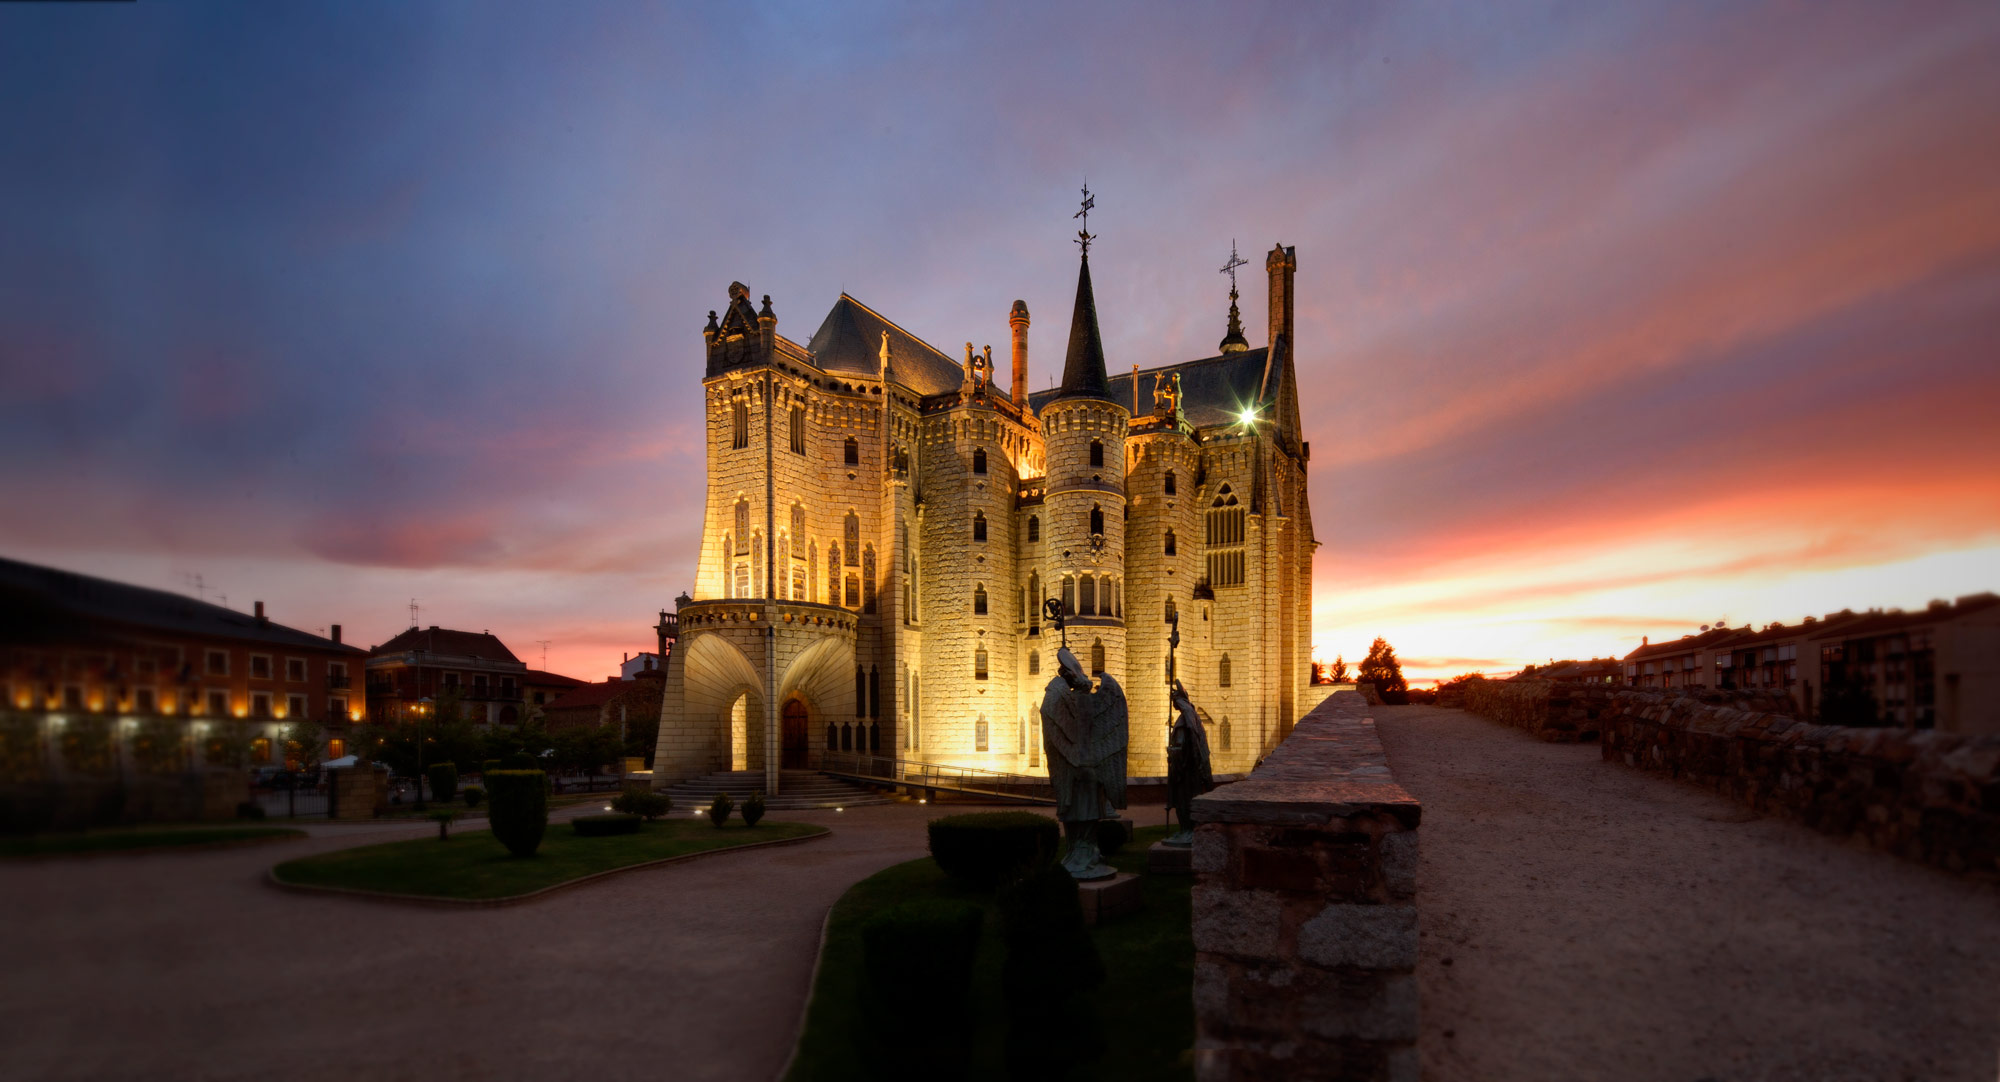 Slate Roofing Restores The Episcopal Palace In Astorga Spain